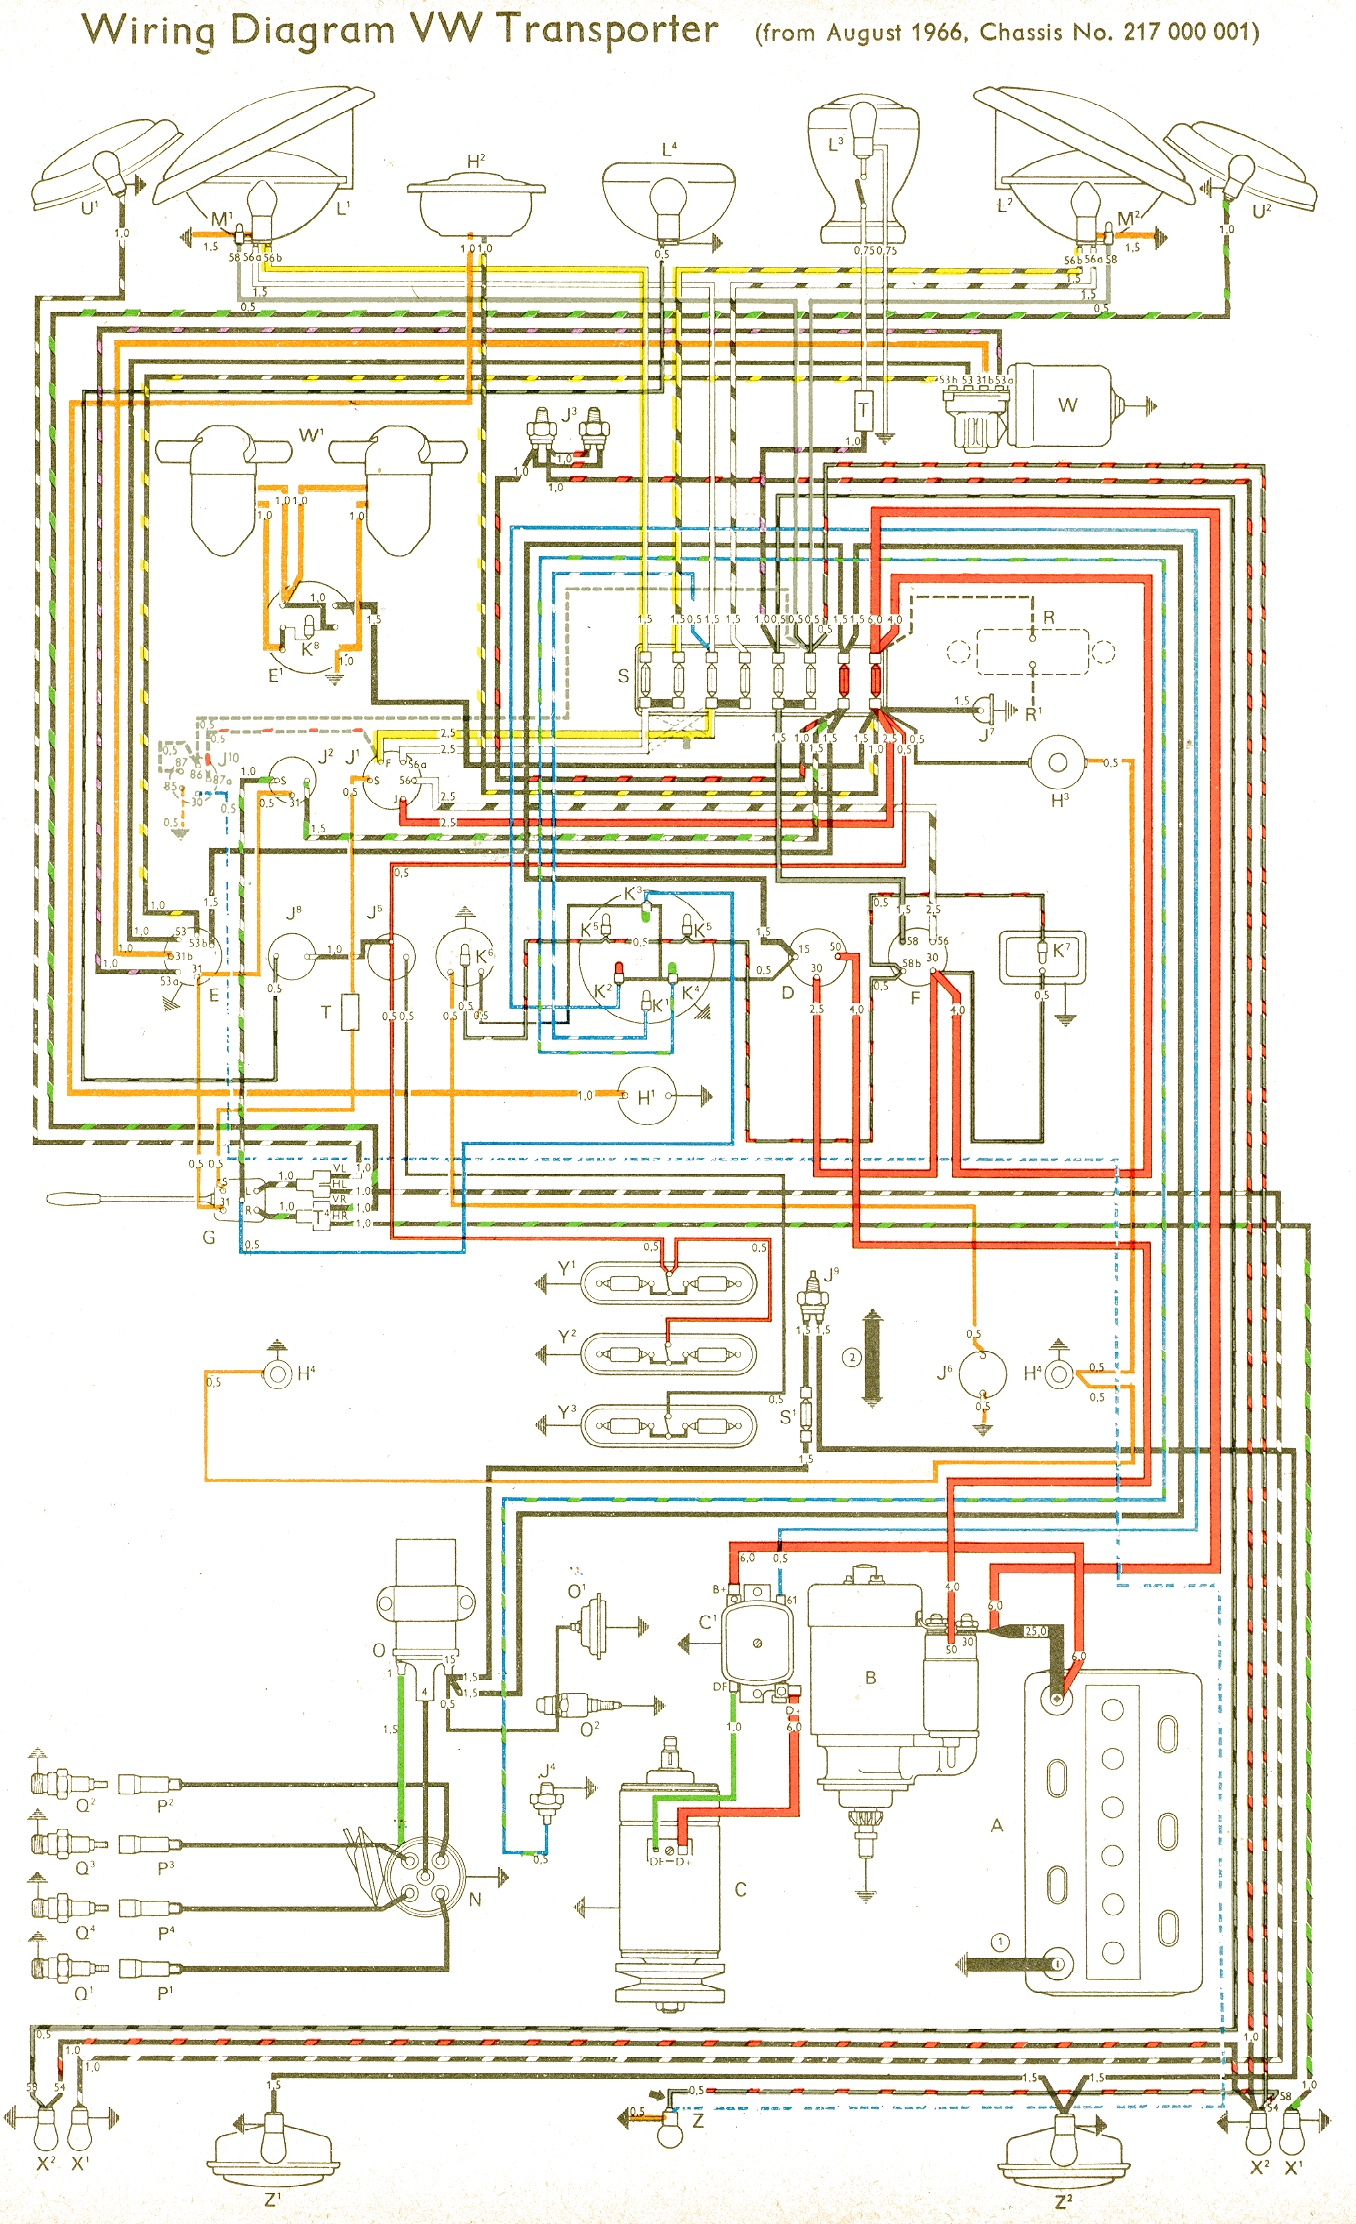 Wiring Diagram For 1975 Vw Beetle : To